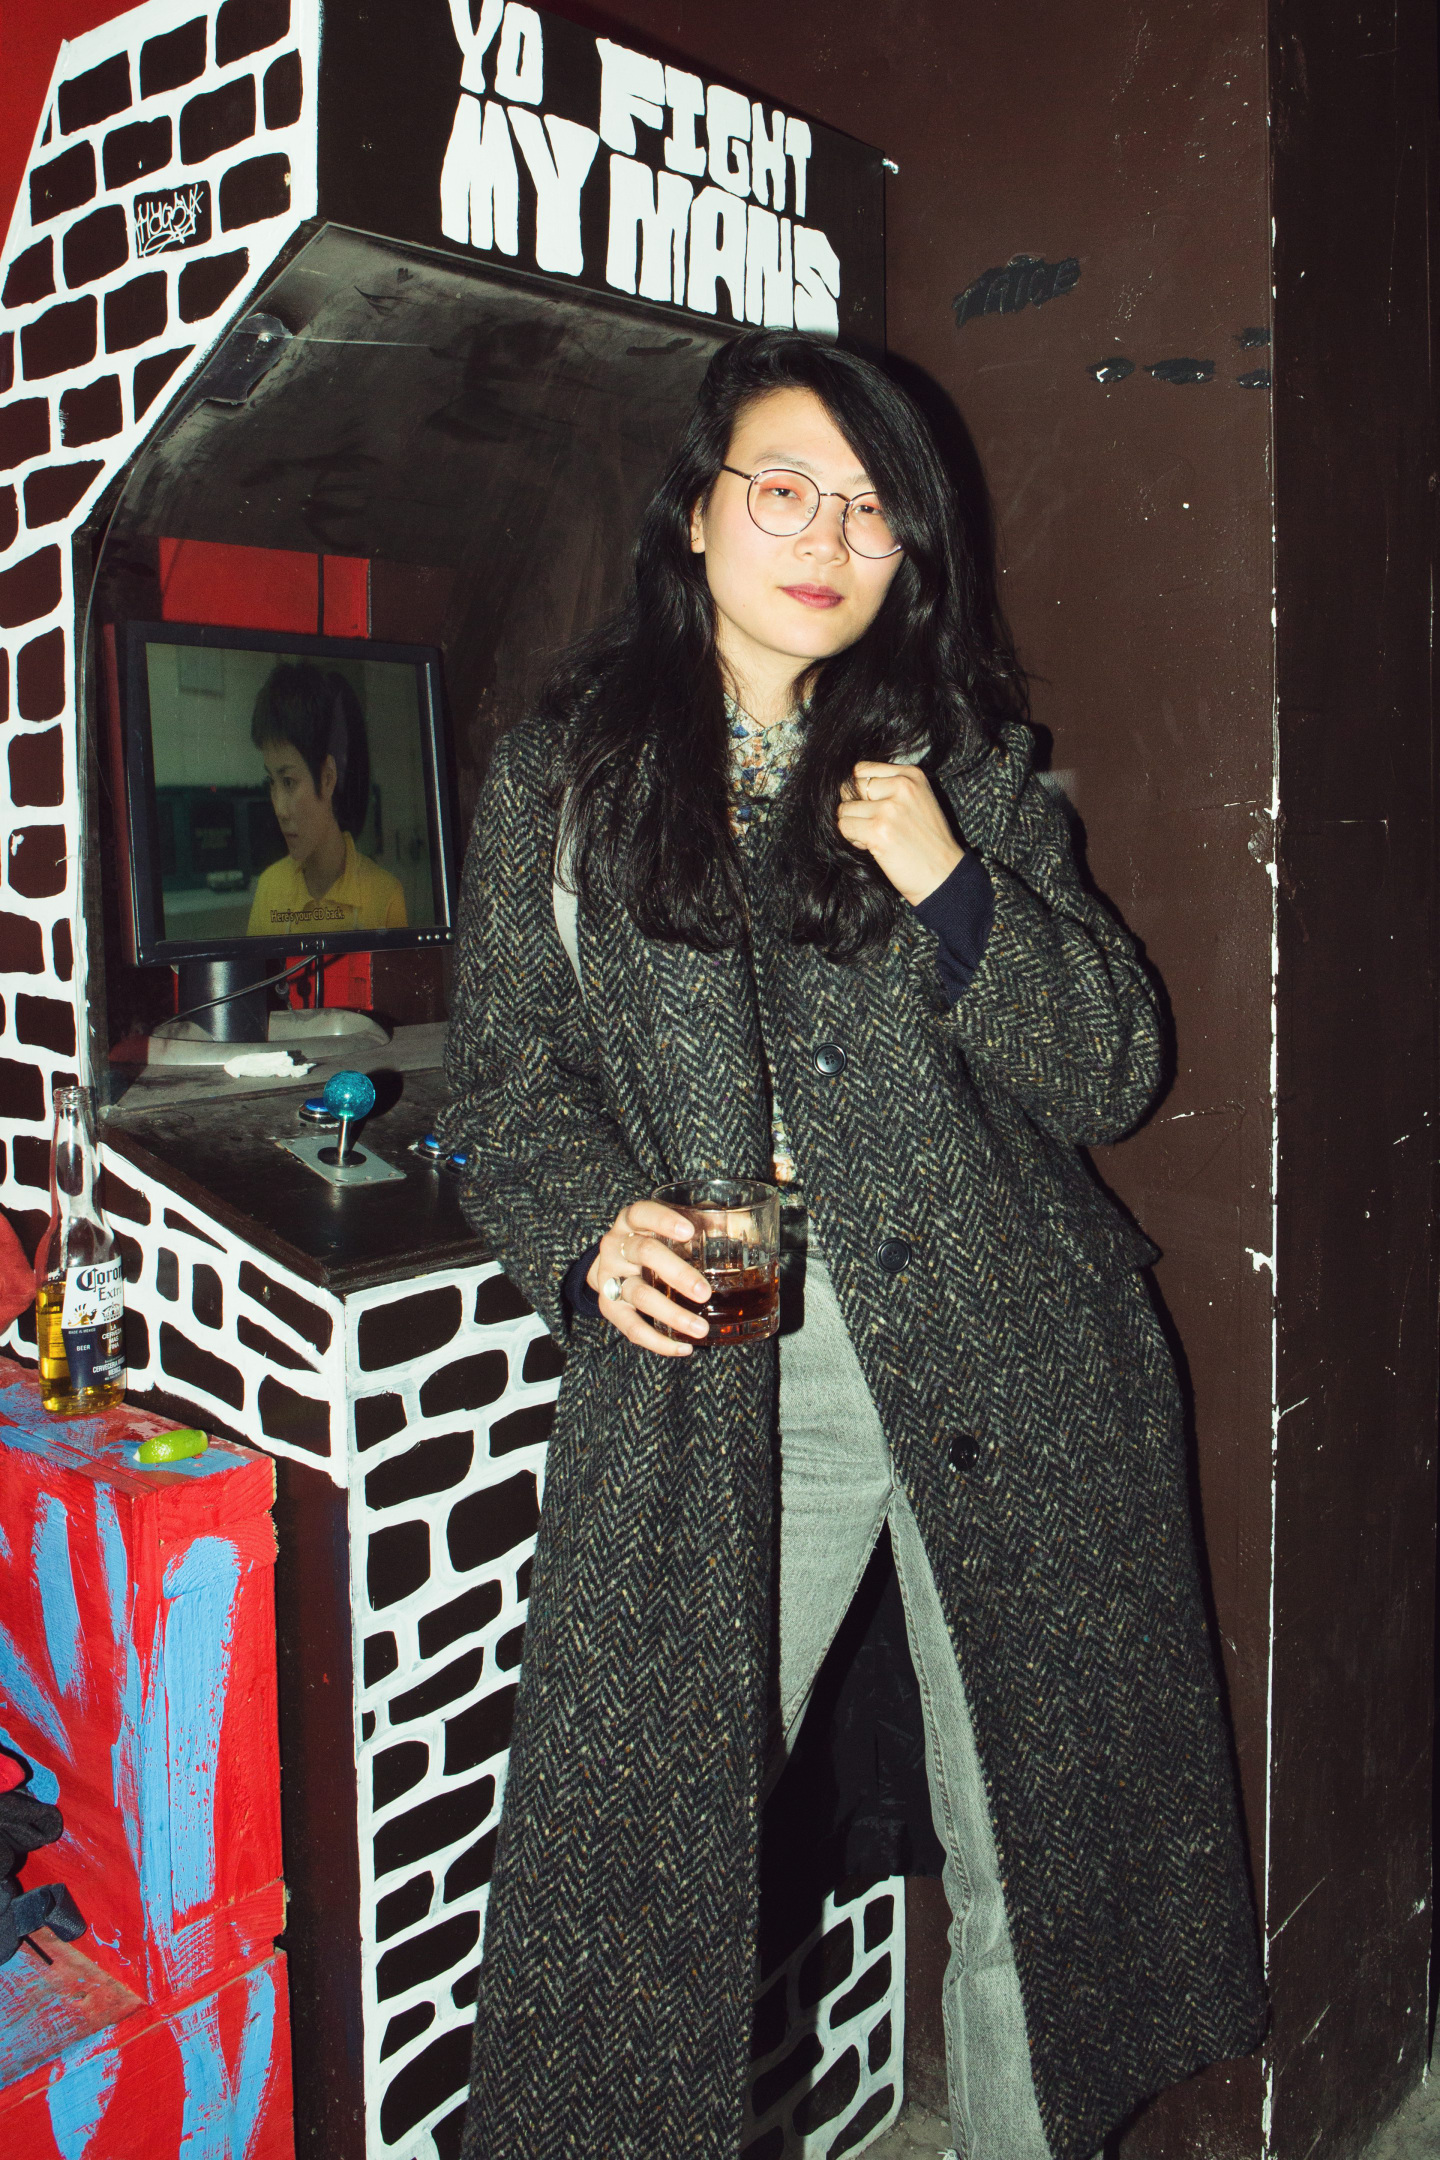 24 rad fits from a comfy night out in Bushwick